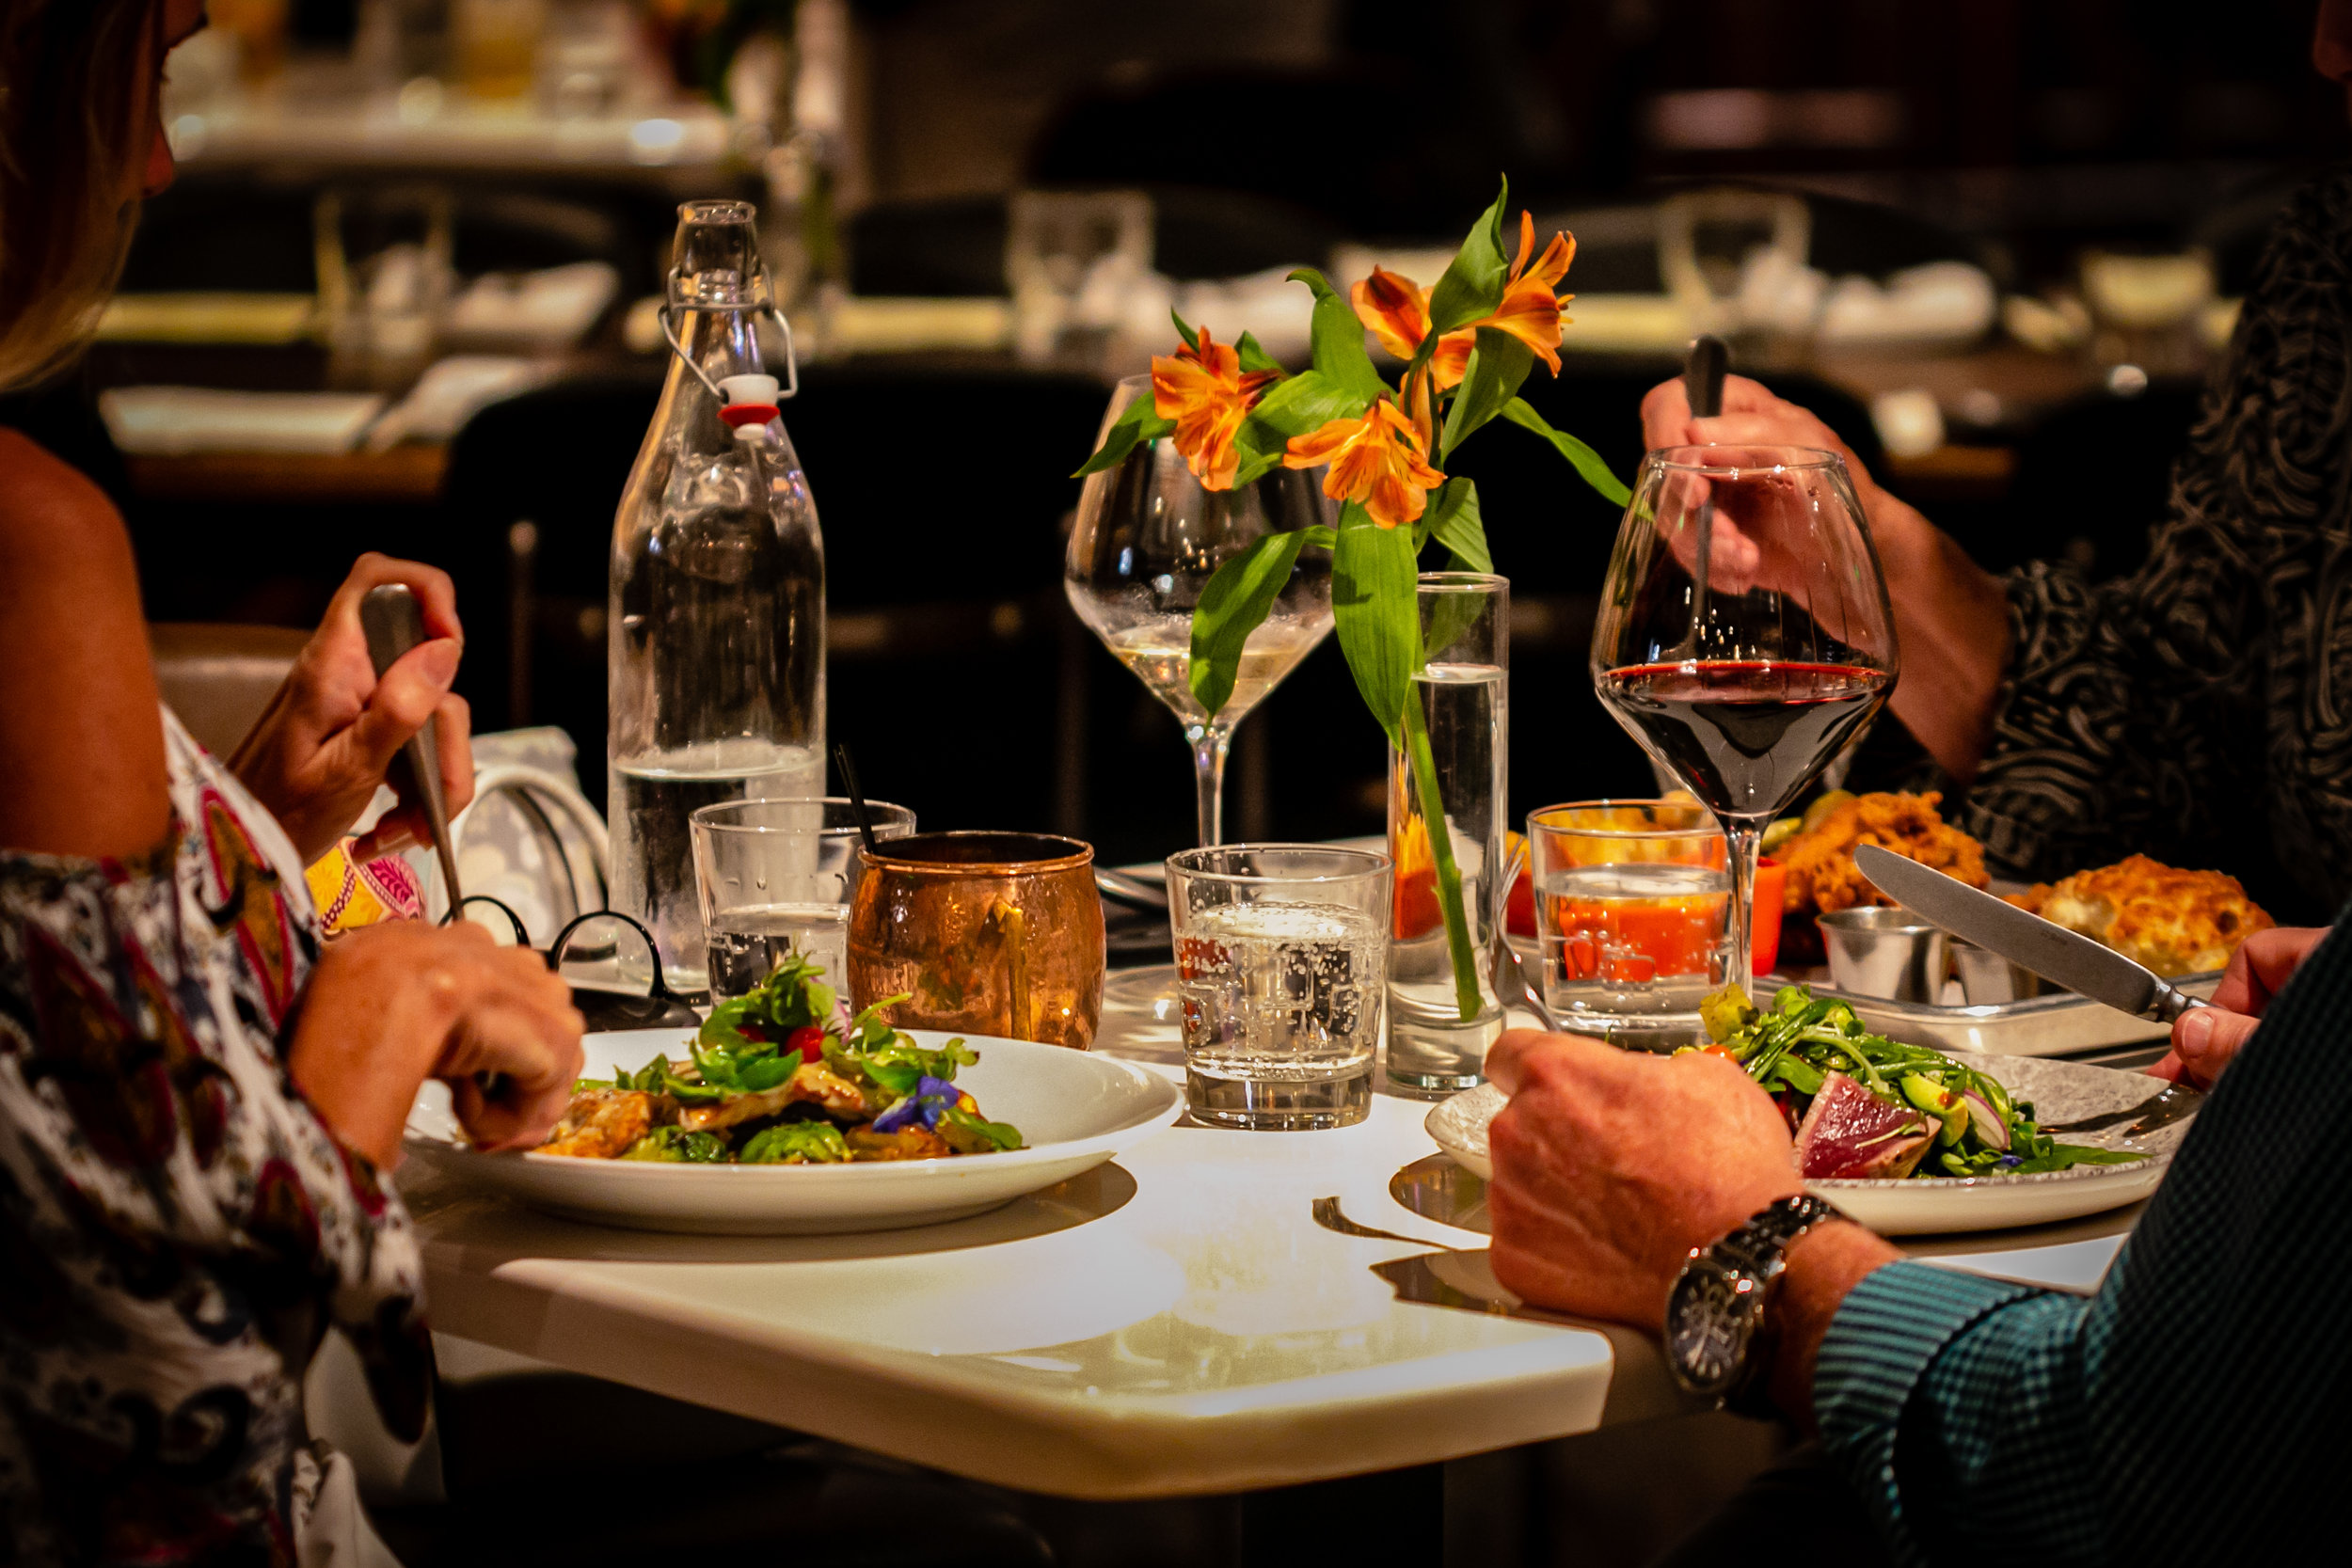 Diners Dining-1.jpg